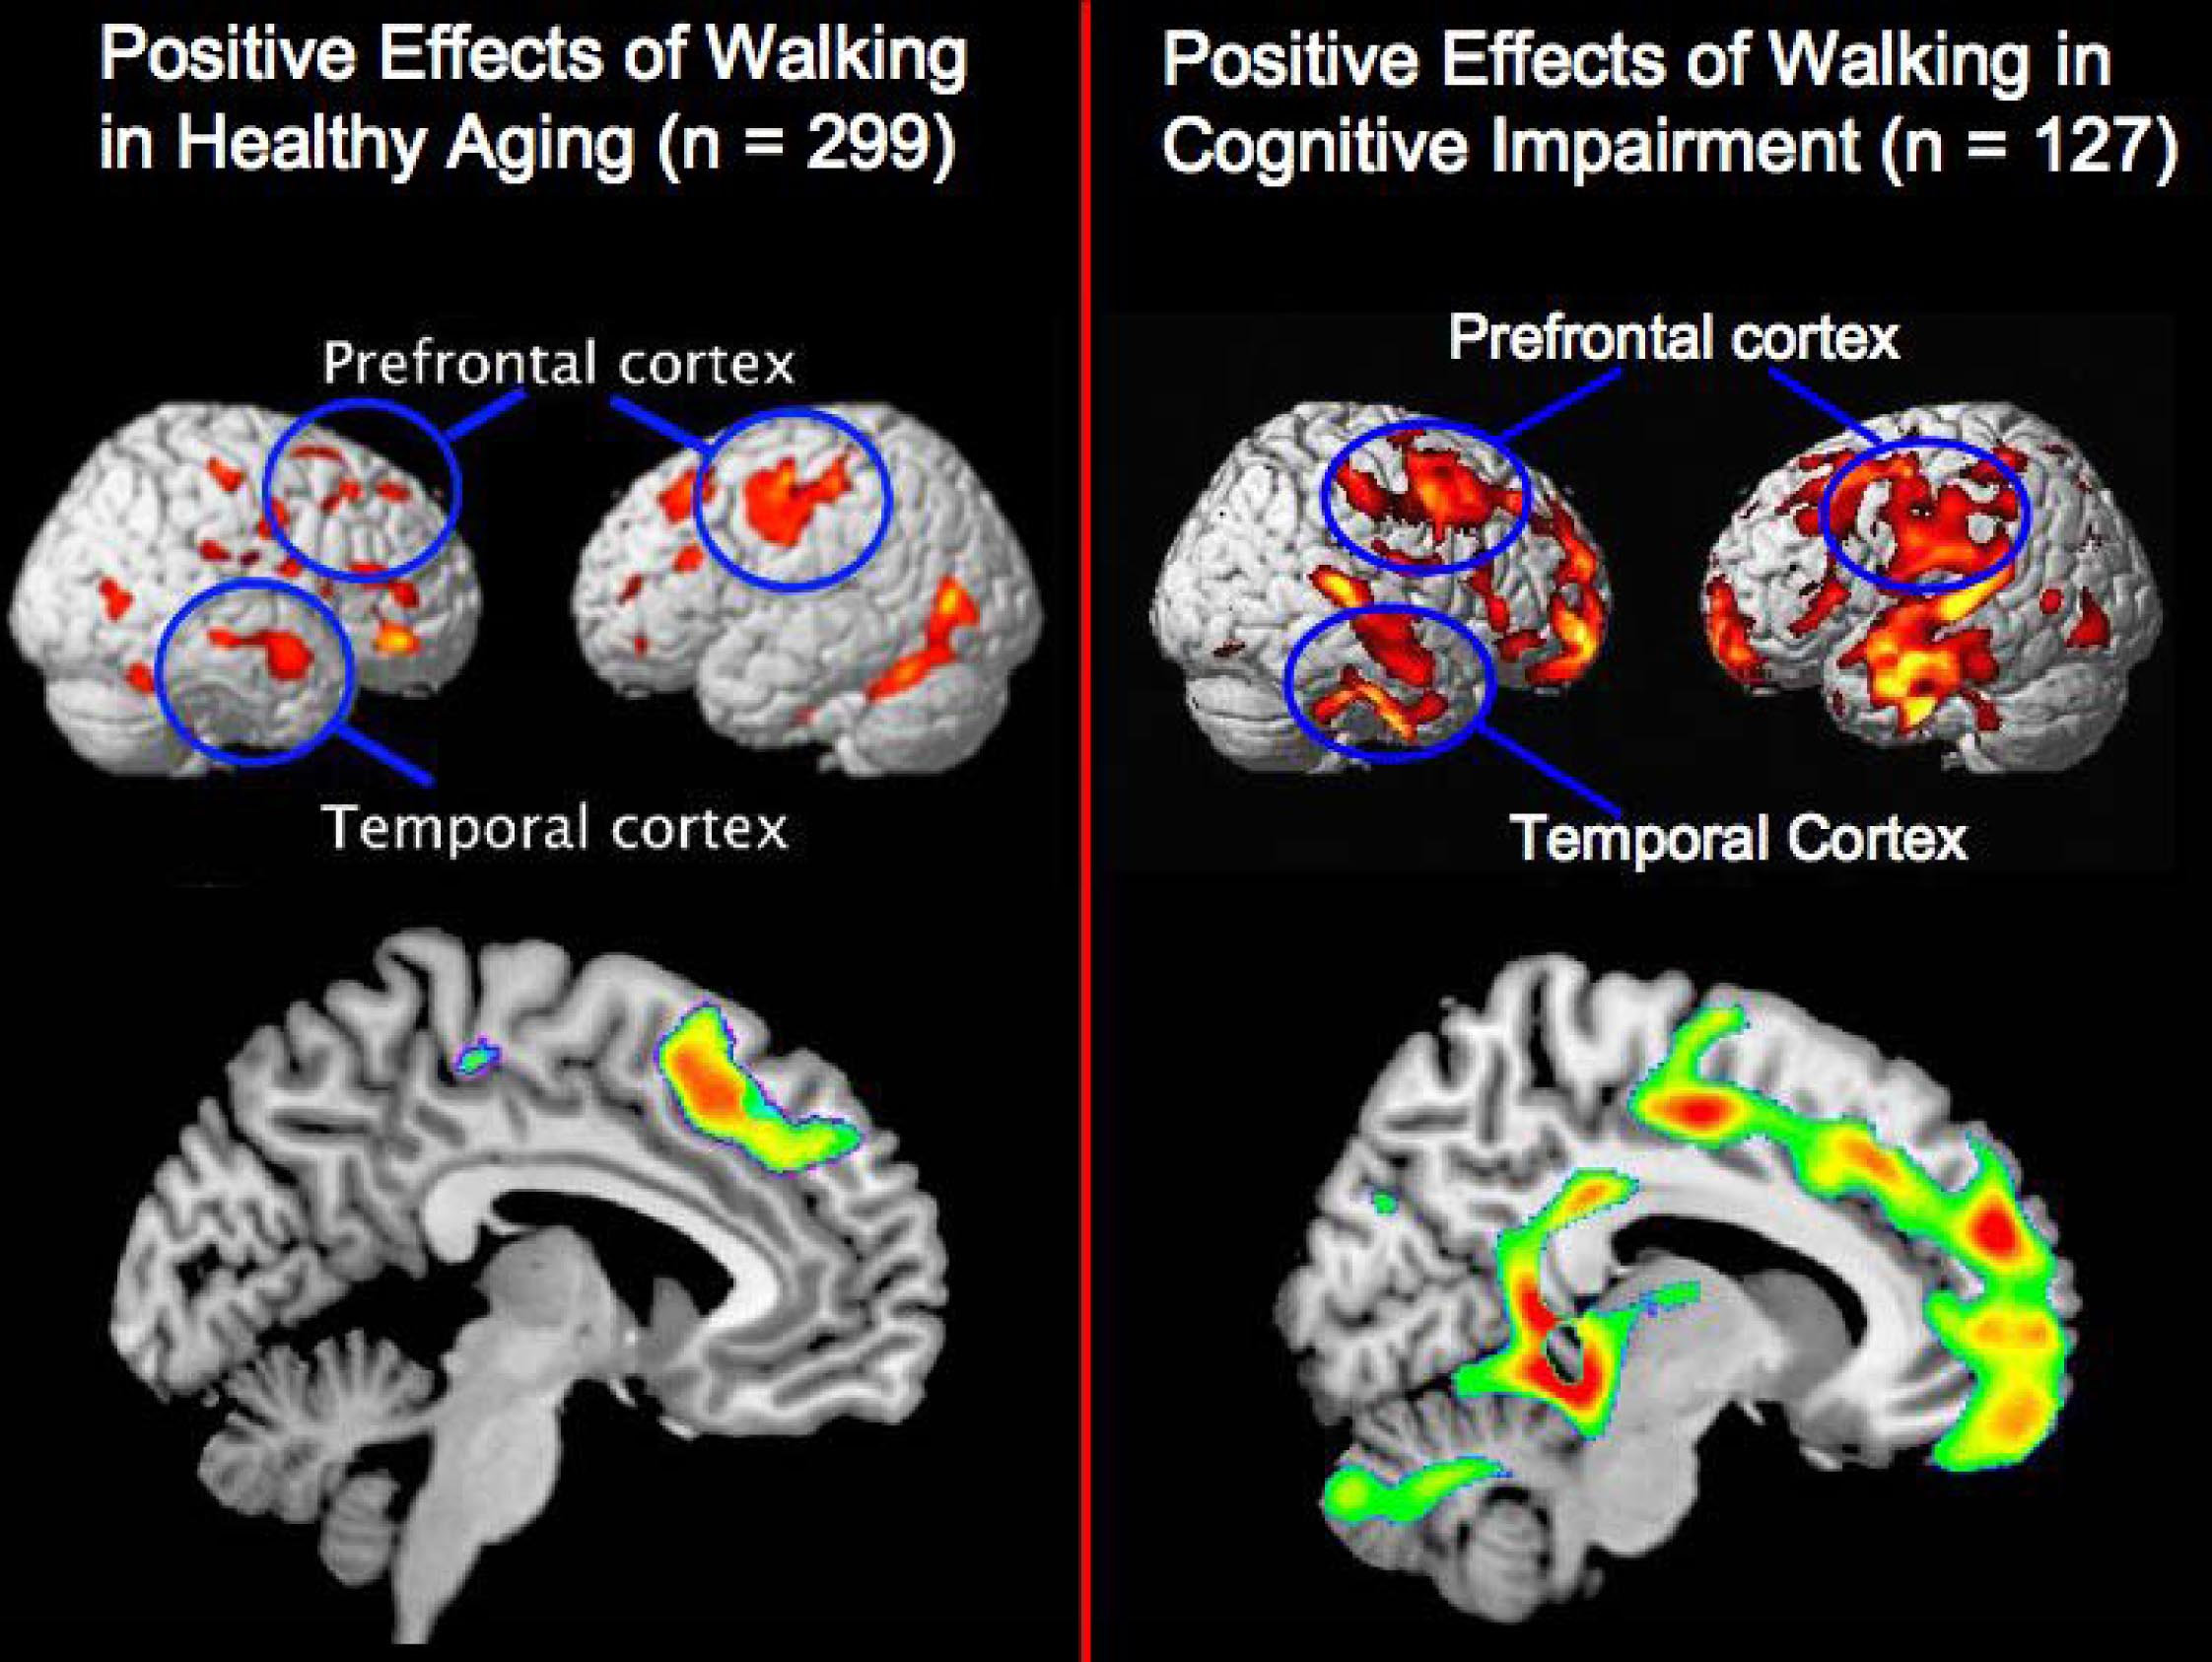 This figure compares the beneficial effects of physical activity on the brains of healthy aging individuals to the positive relationships between exercise and brain structure in cognitively impaired persons with either mild cognitive impairment or Alhzeimer's.